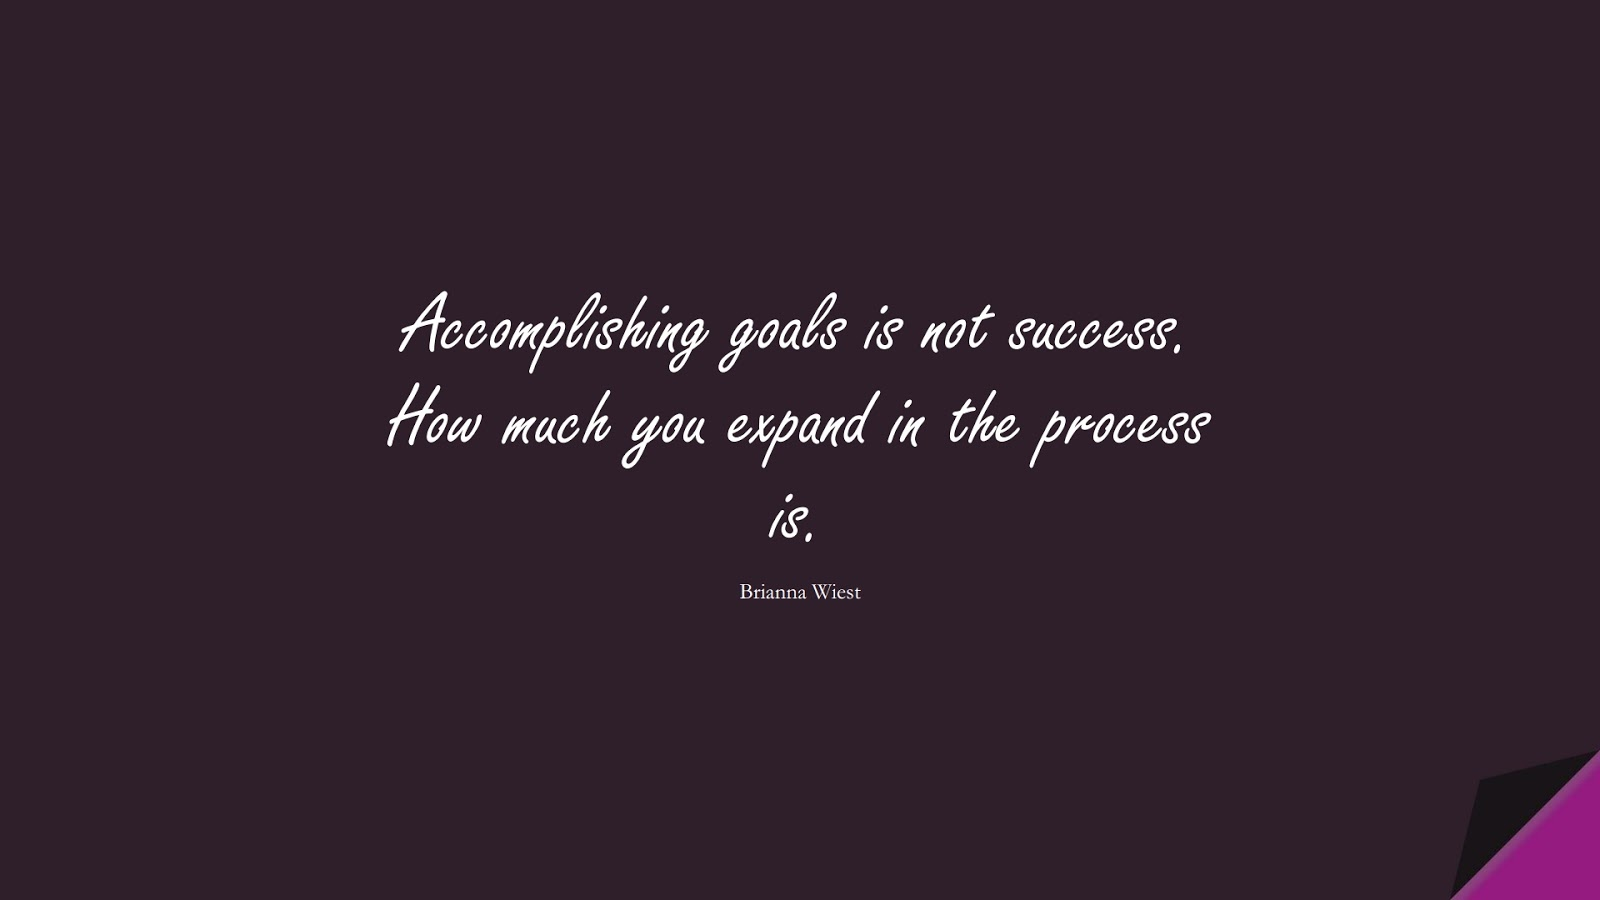 Accomplishing goals is not success. How much you expand in the process is. (Brianna Wiest);  #SuccessQuotes